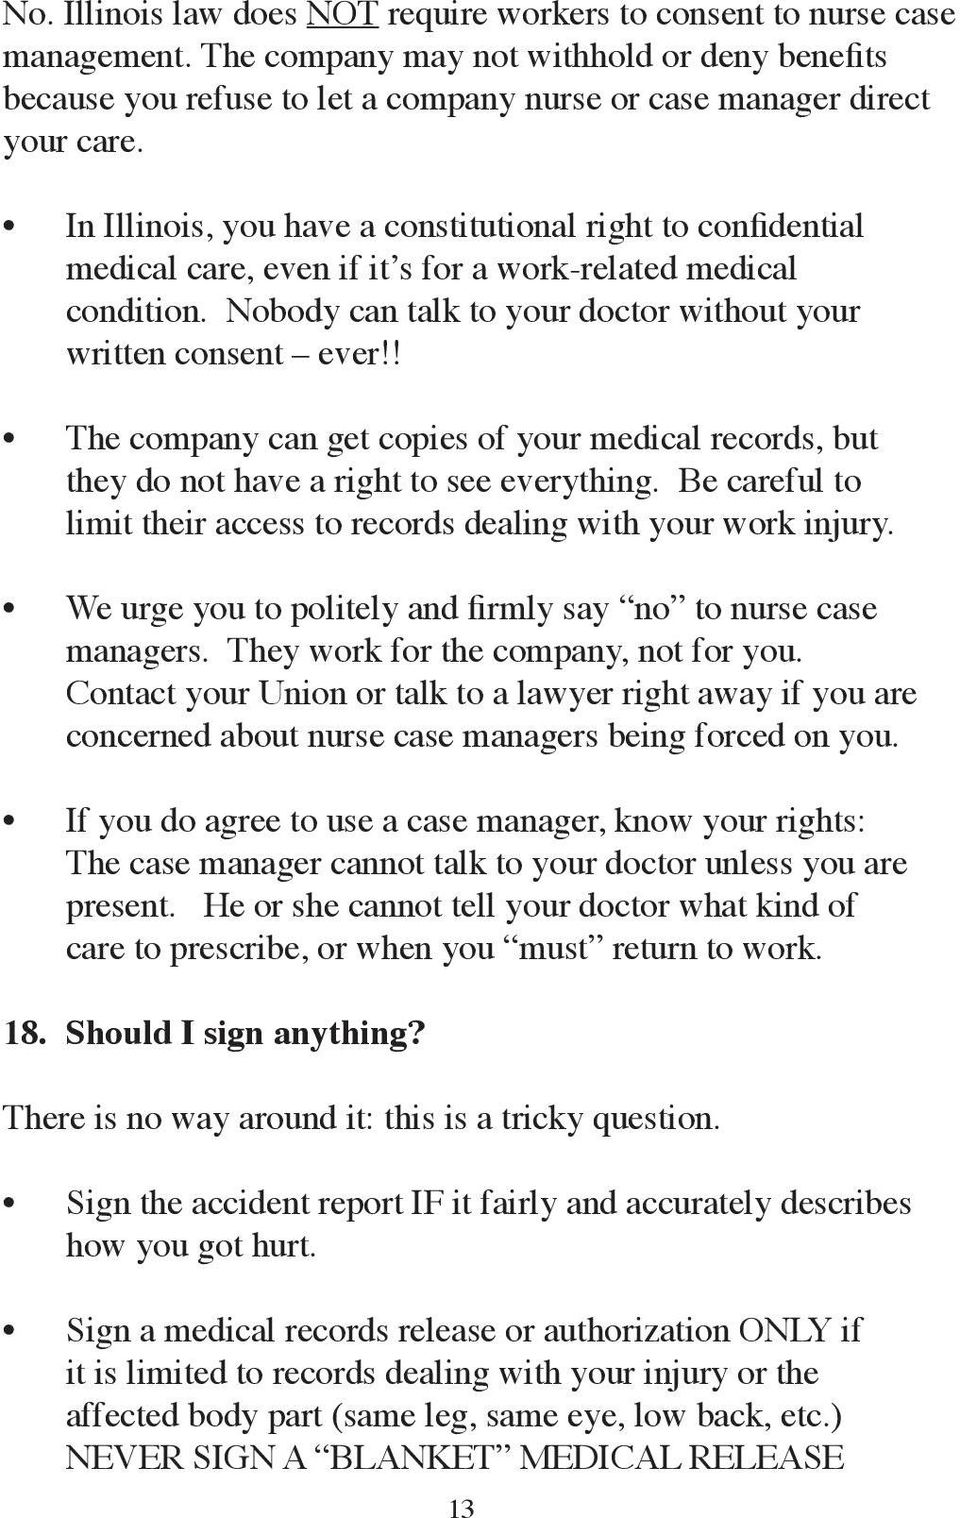 ! The company can get copies of your medical records, but they do not have a right to see everything. Be careful to limit their access to records dealing with your work injury.